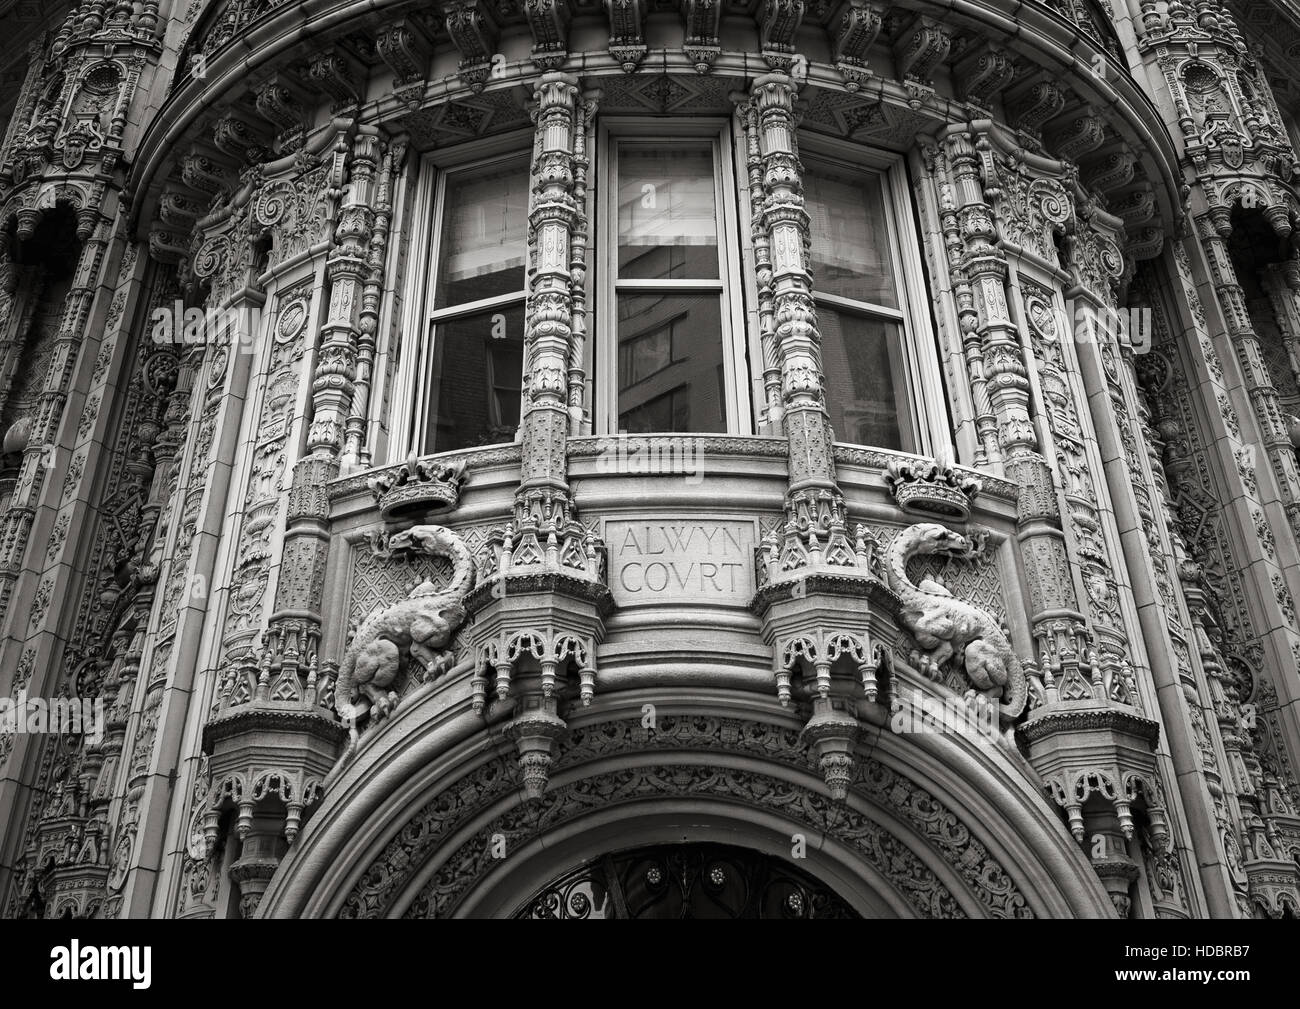 Magnificent architectural ornaments of the Alwyn Court building facade. Black and White, New York City. - Stock Image